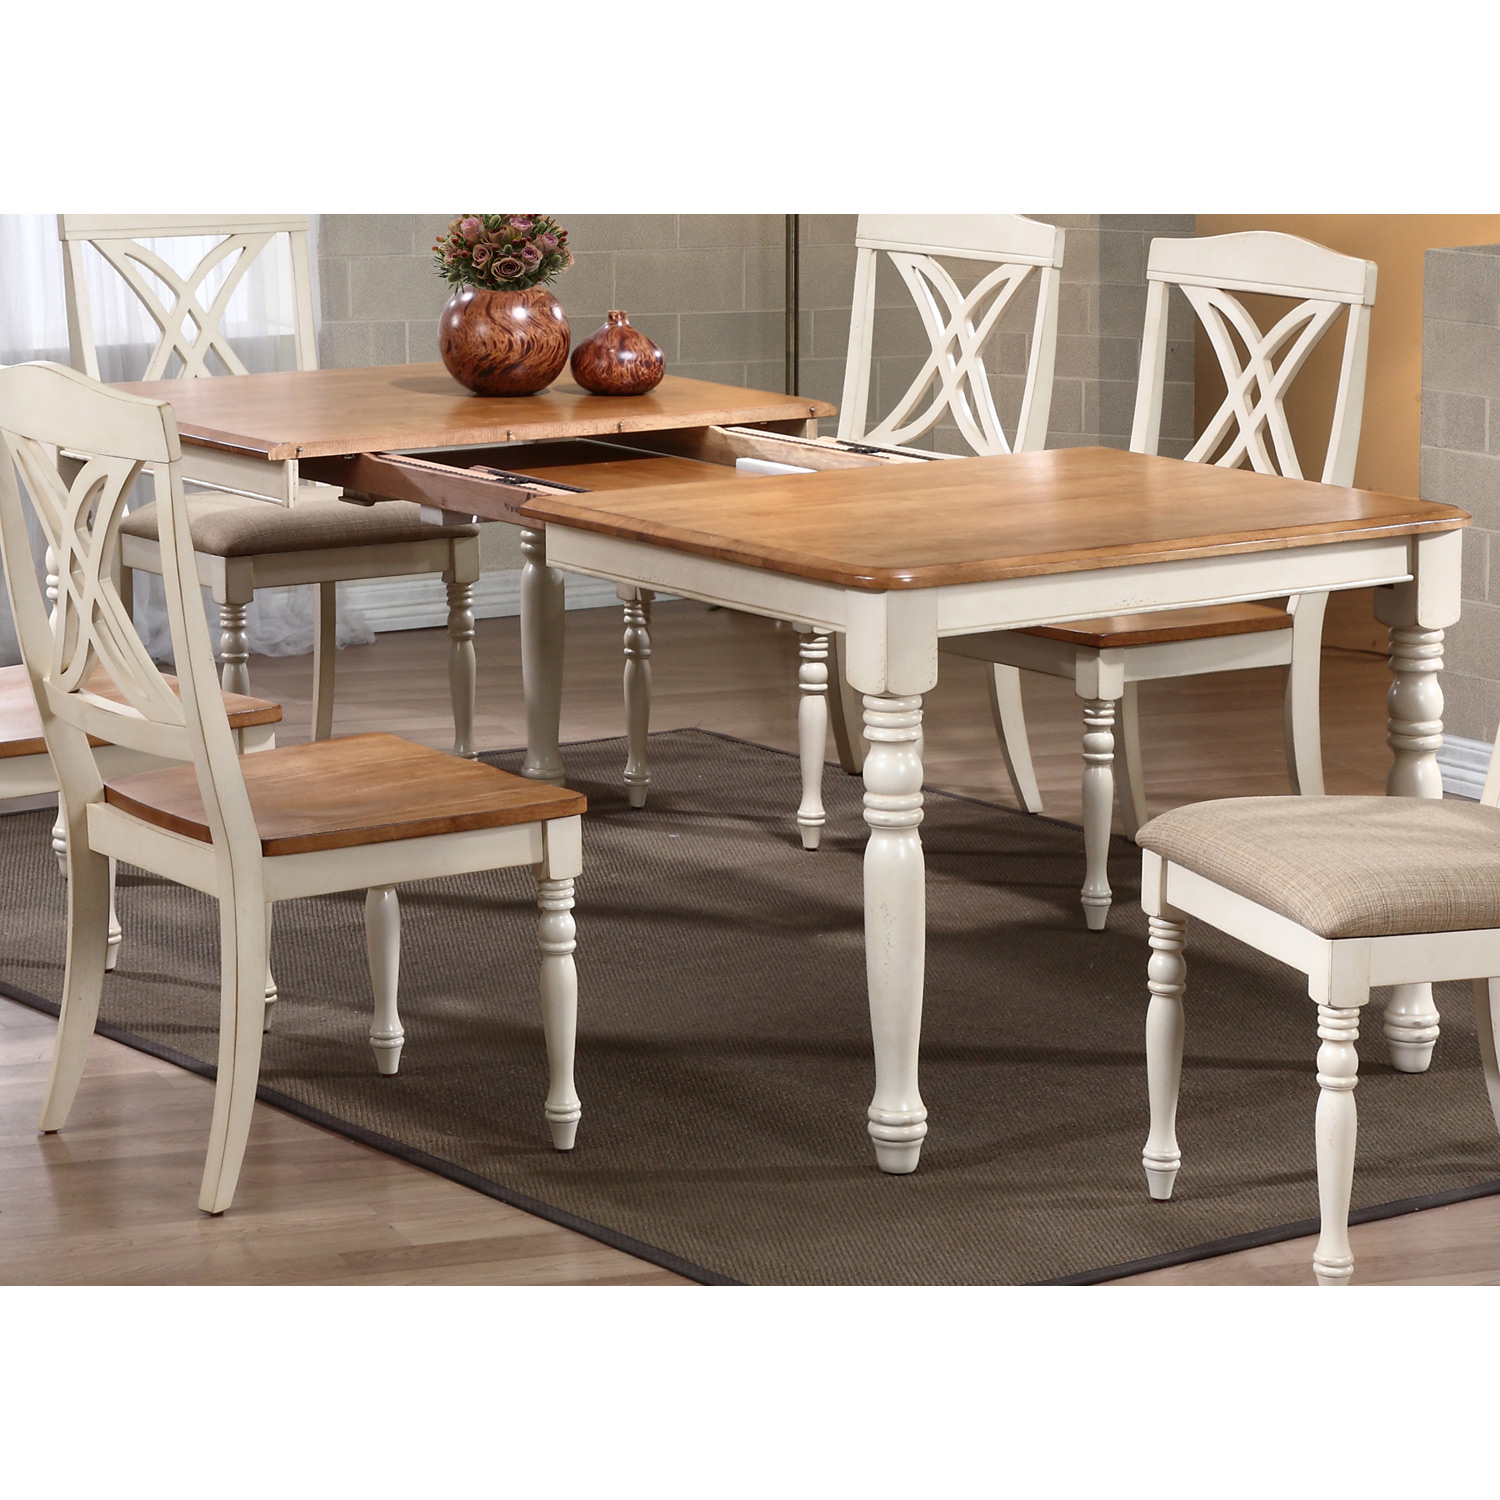 Meredith Extending Dining Table Turned Legs Biscotti Caramel Icon Rt